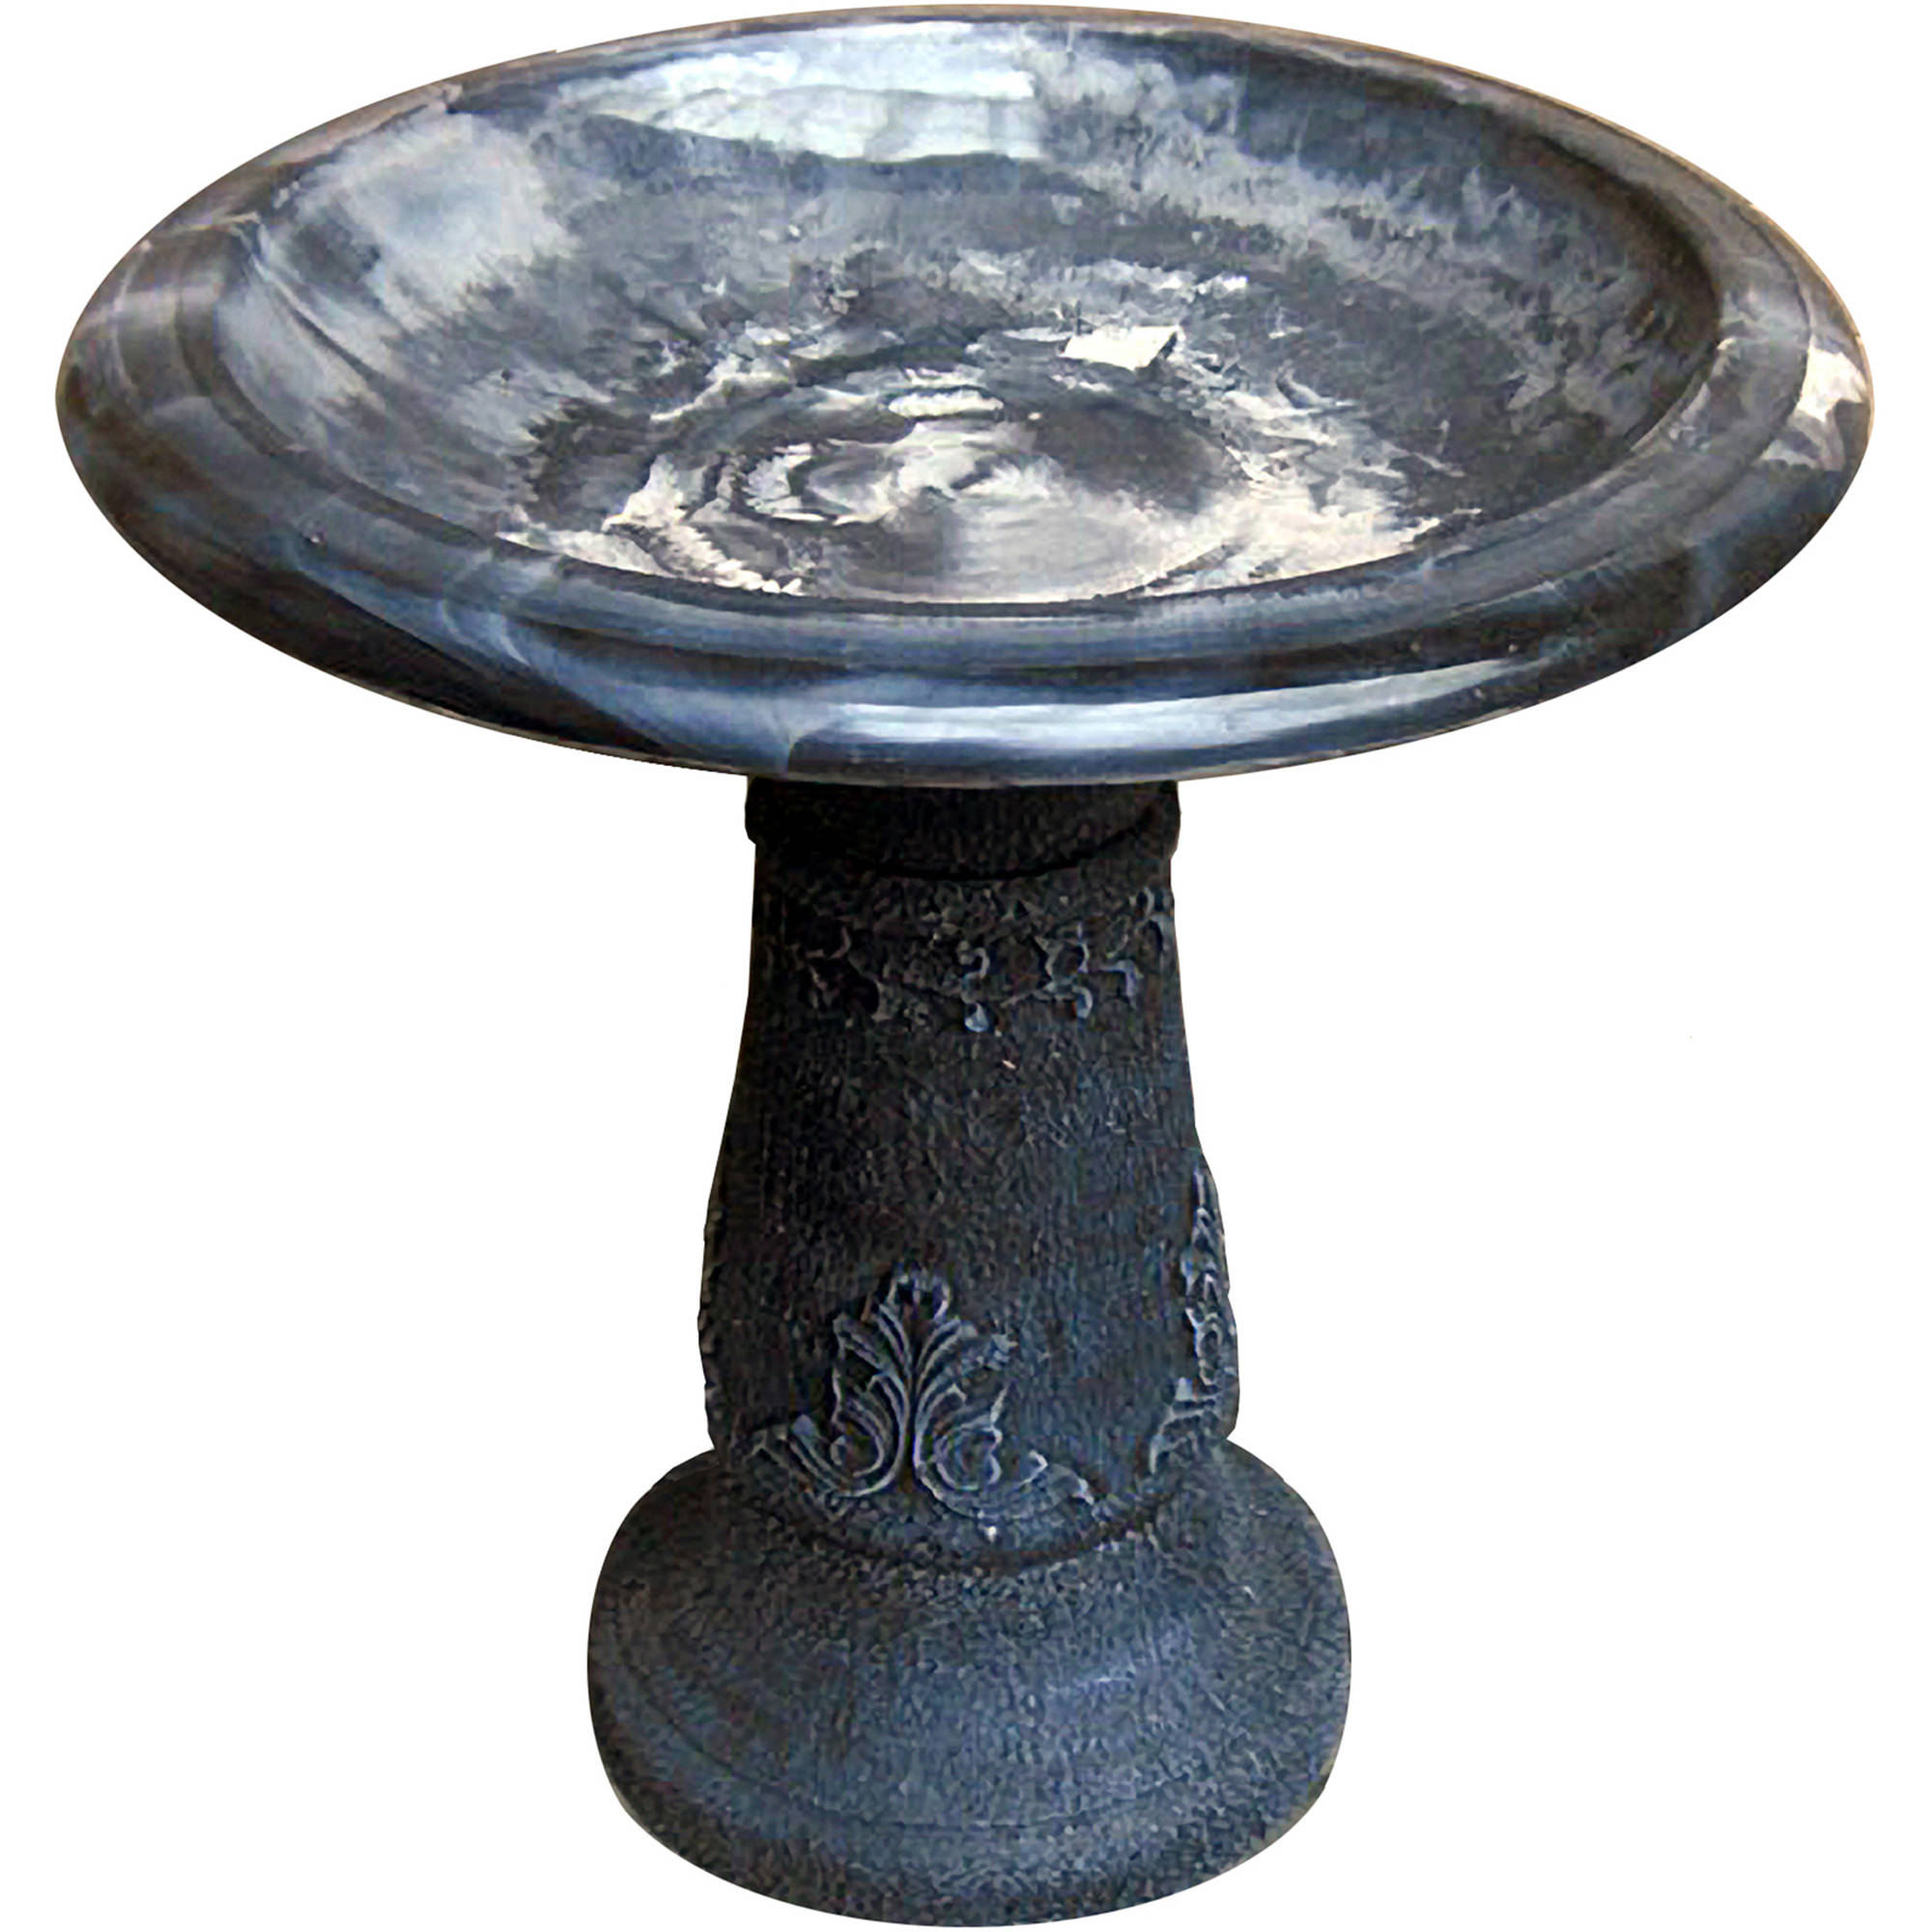 Florentine Marbelized Bird Bath, Blue/Black